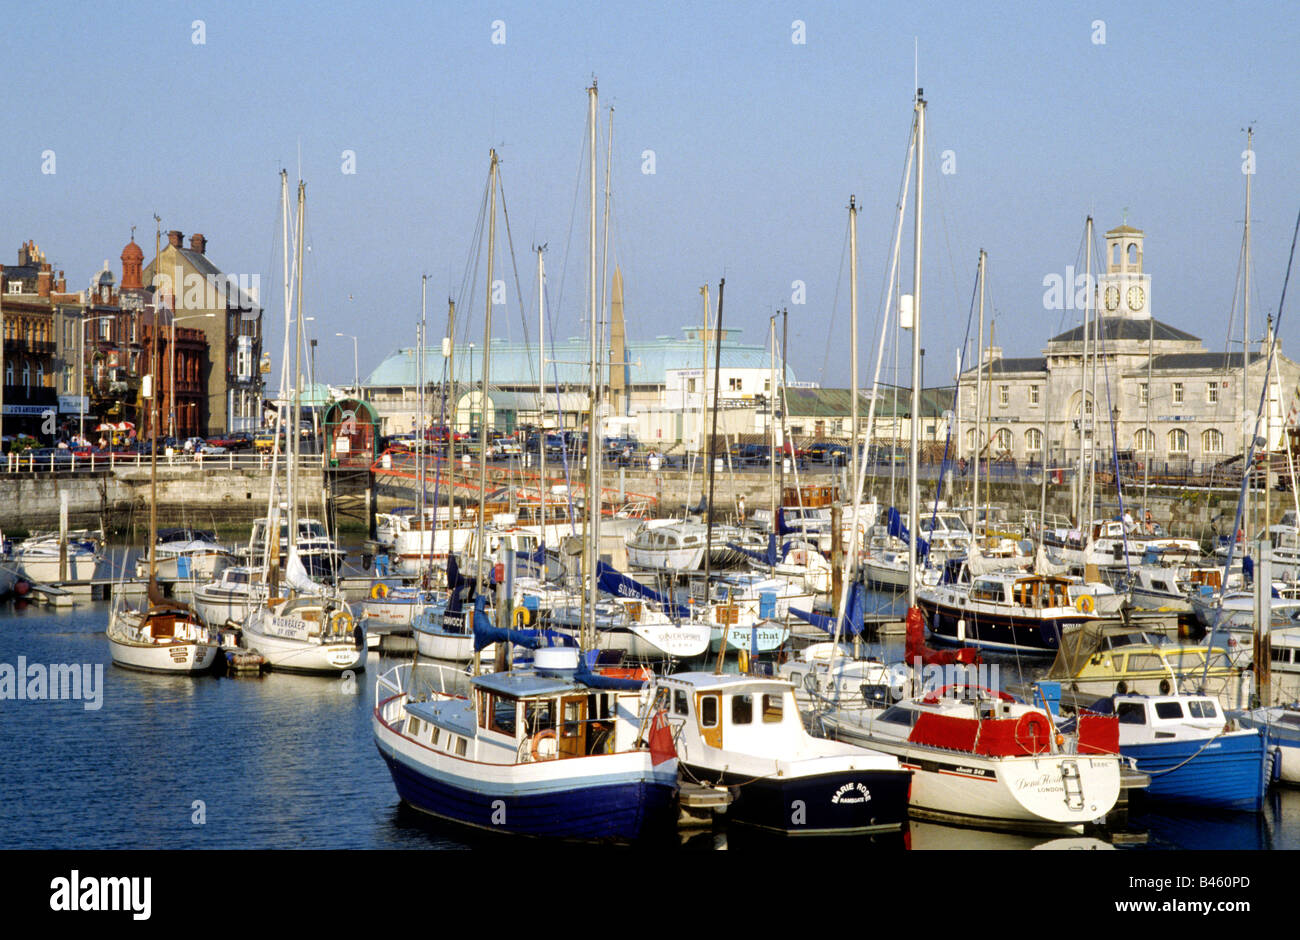 Ramsgate Harbour Marina Kent boats sailing vessels England UK port buildings - Stock Image